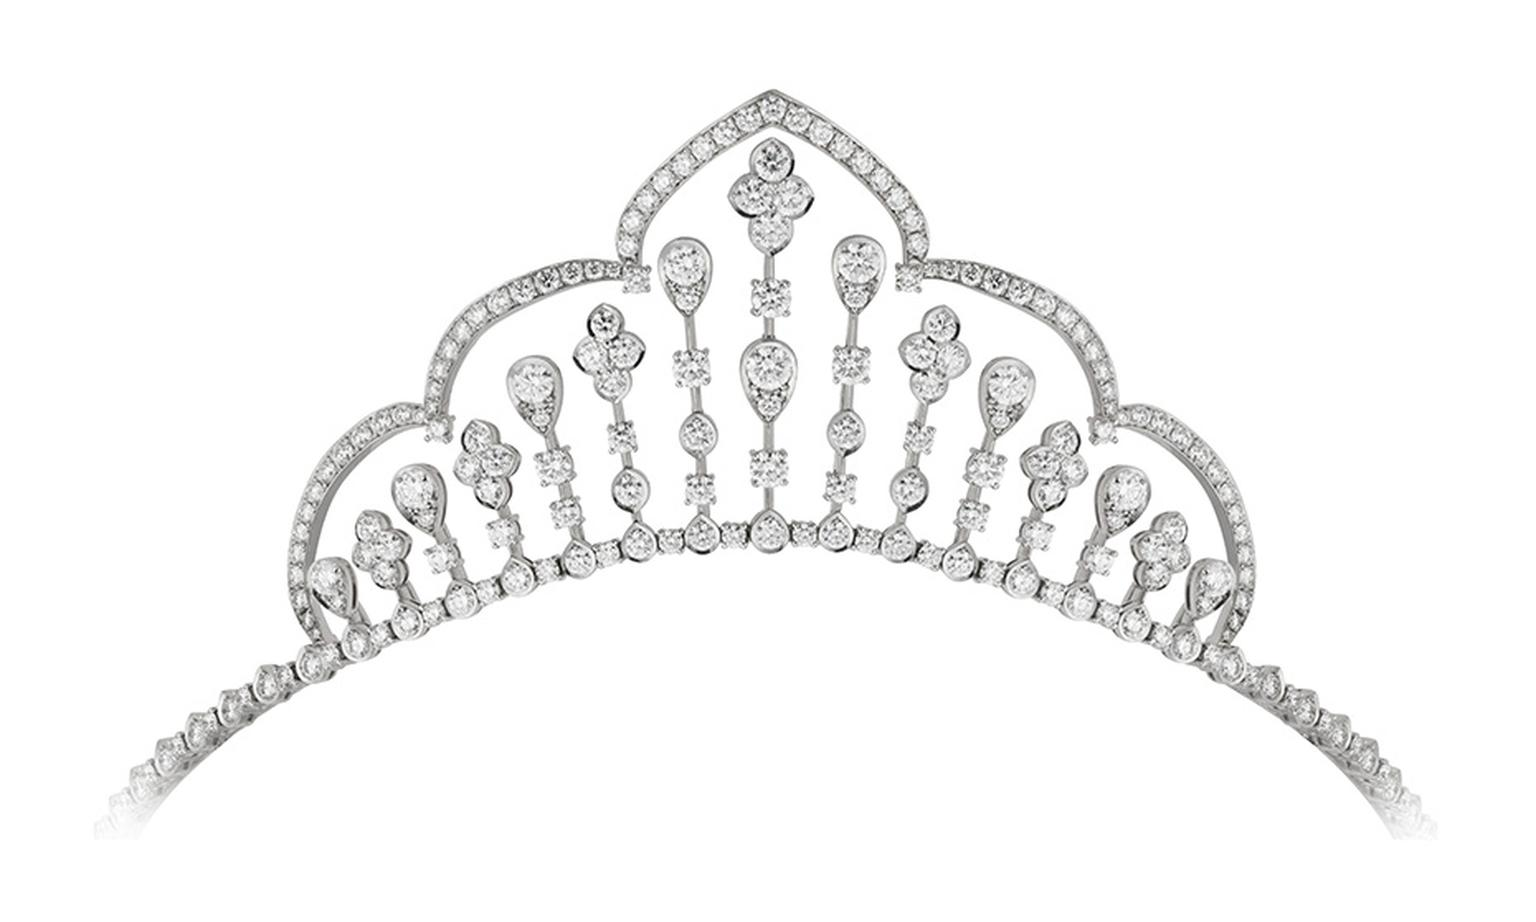 Garrard Fringe tiara in white gold and diamonds. The tiara can be adjusted by hand to form a Fringe necklace